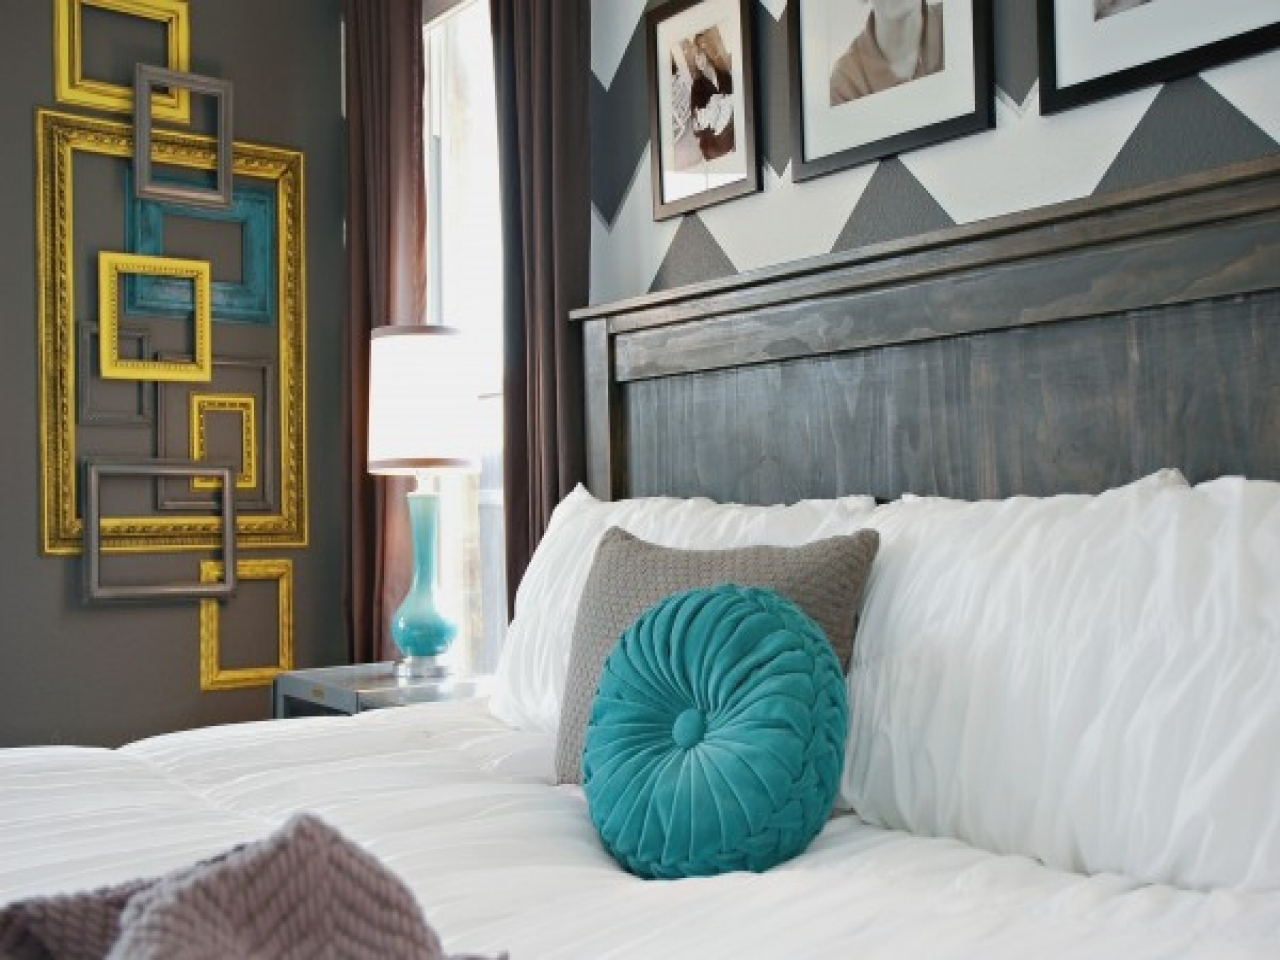 Gray and teal bedroom teal and yellow decor teal yellow